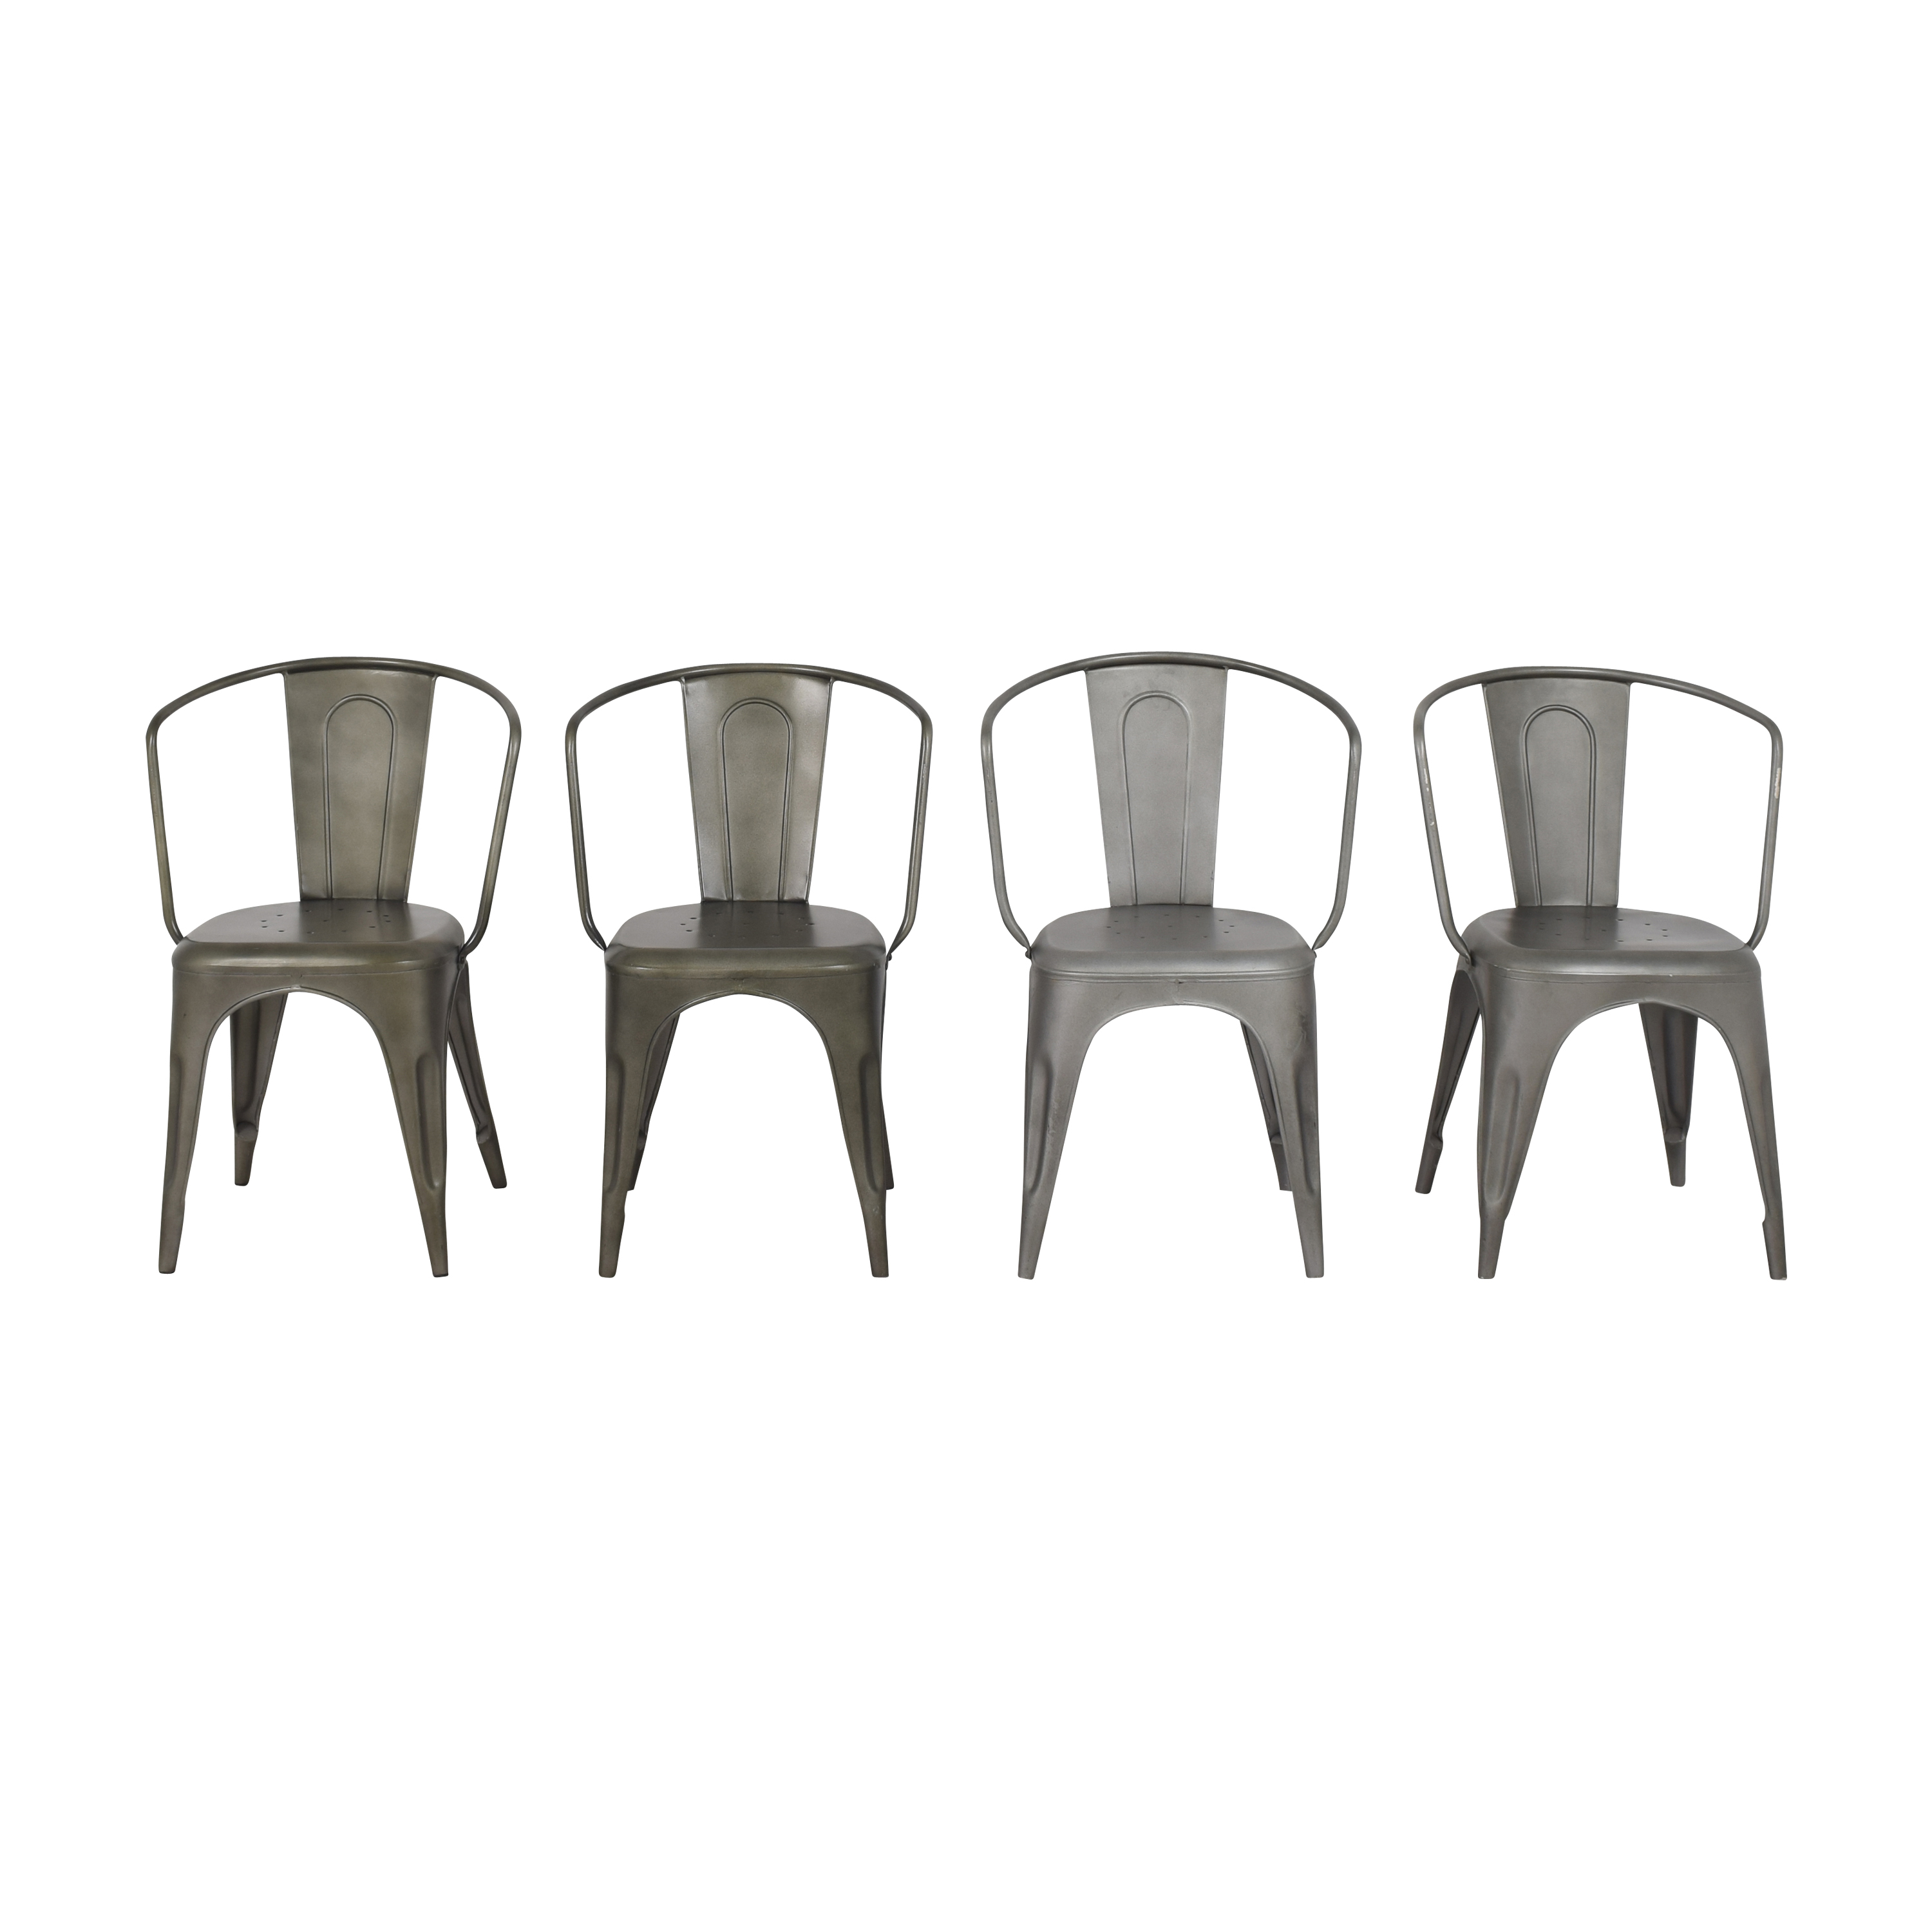 Restoration Hardware Restoration Hardware Marcel Modern Armchairs coupon